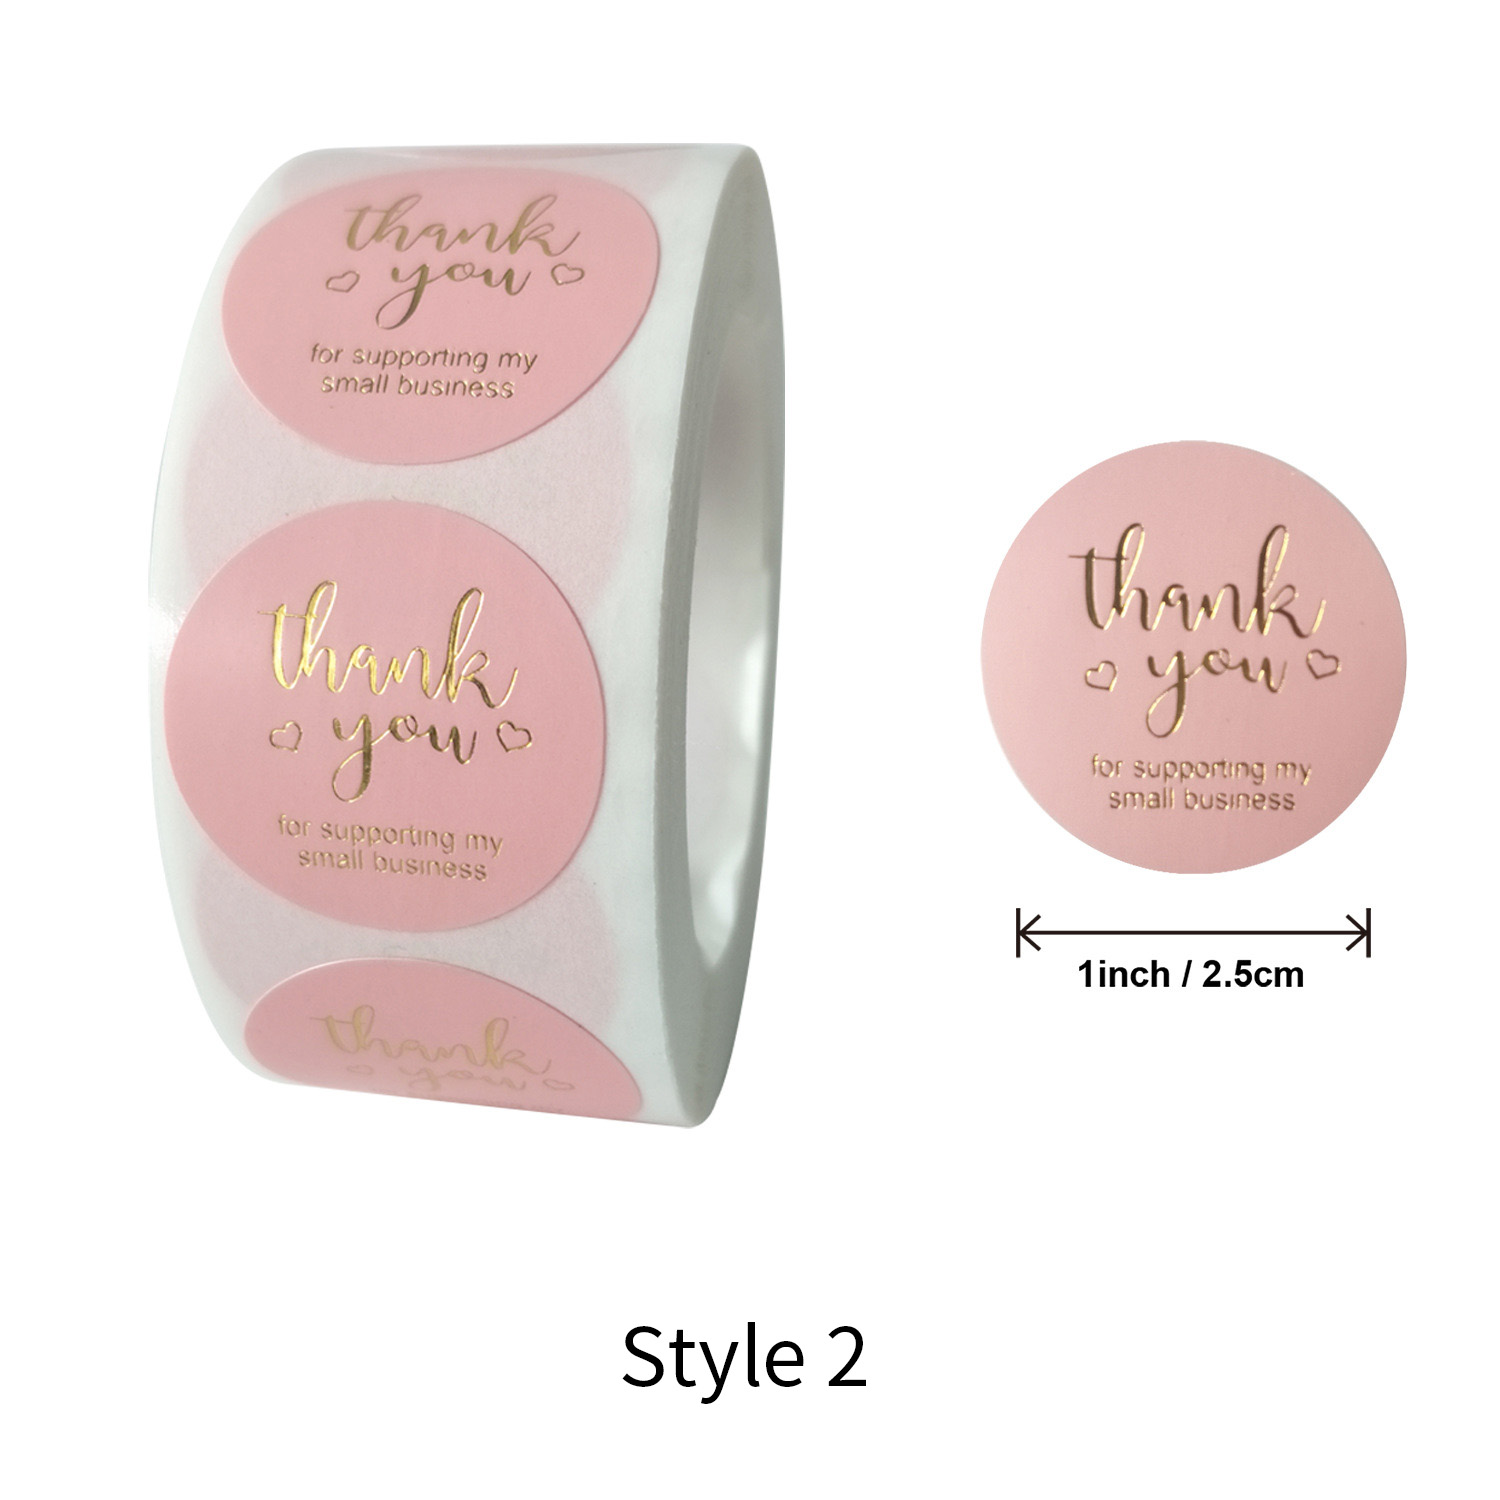 500Pcs Thank You For Supporting Handmade Food Craft Label Stickers Box 25mm DIY